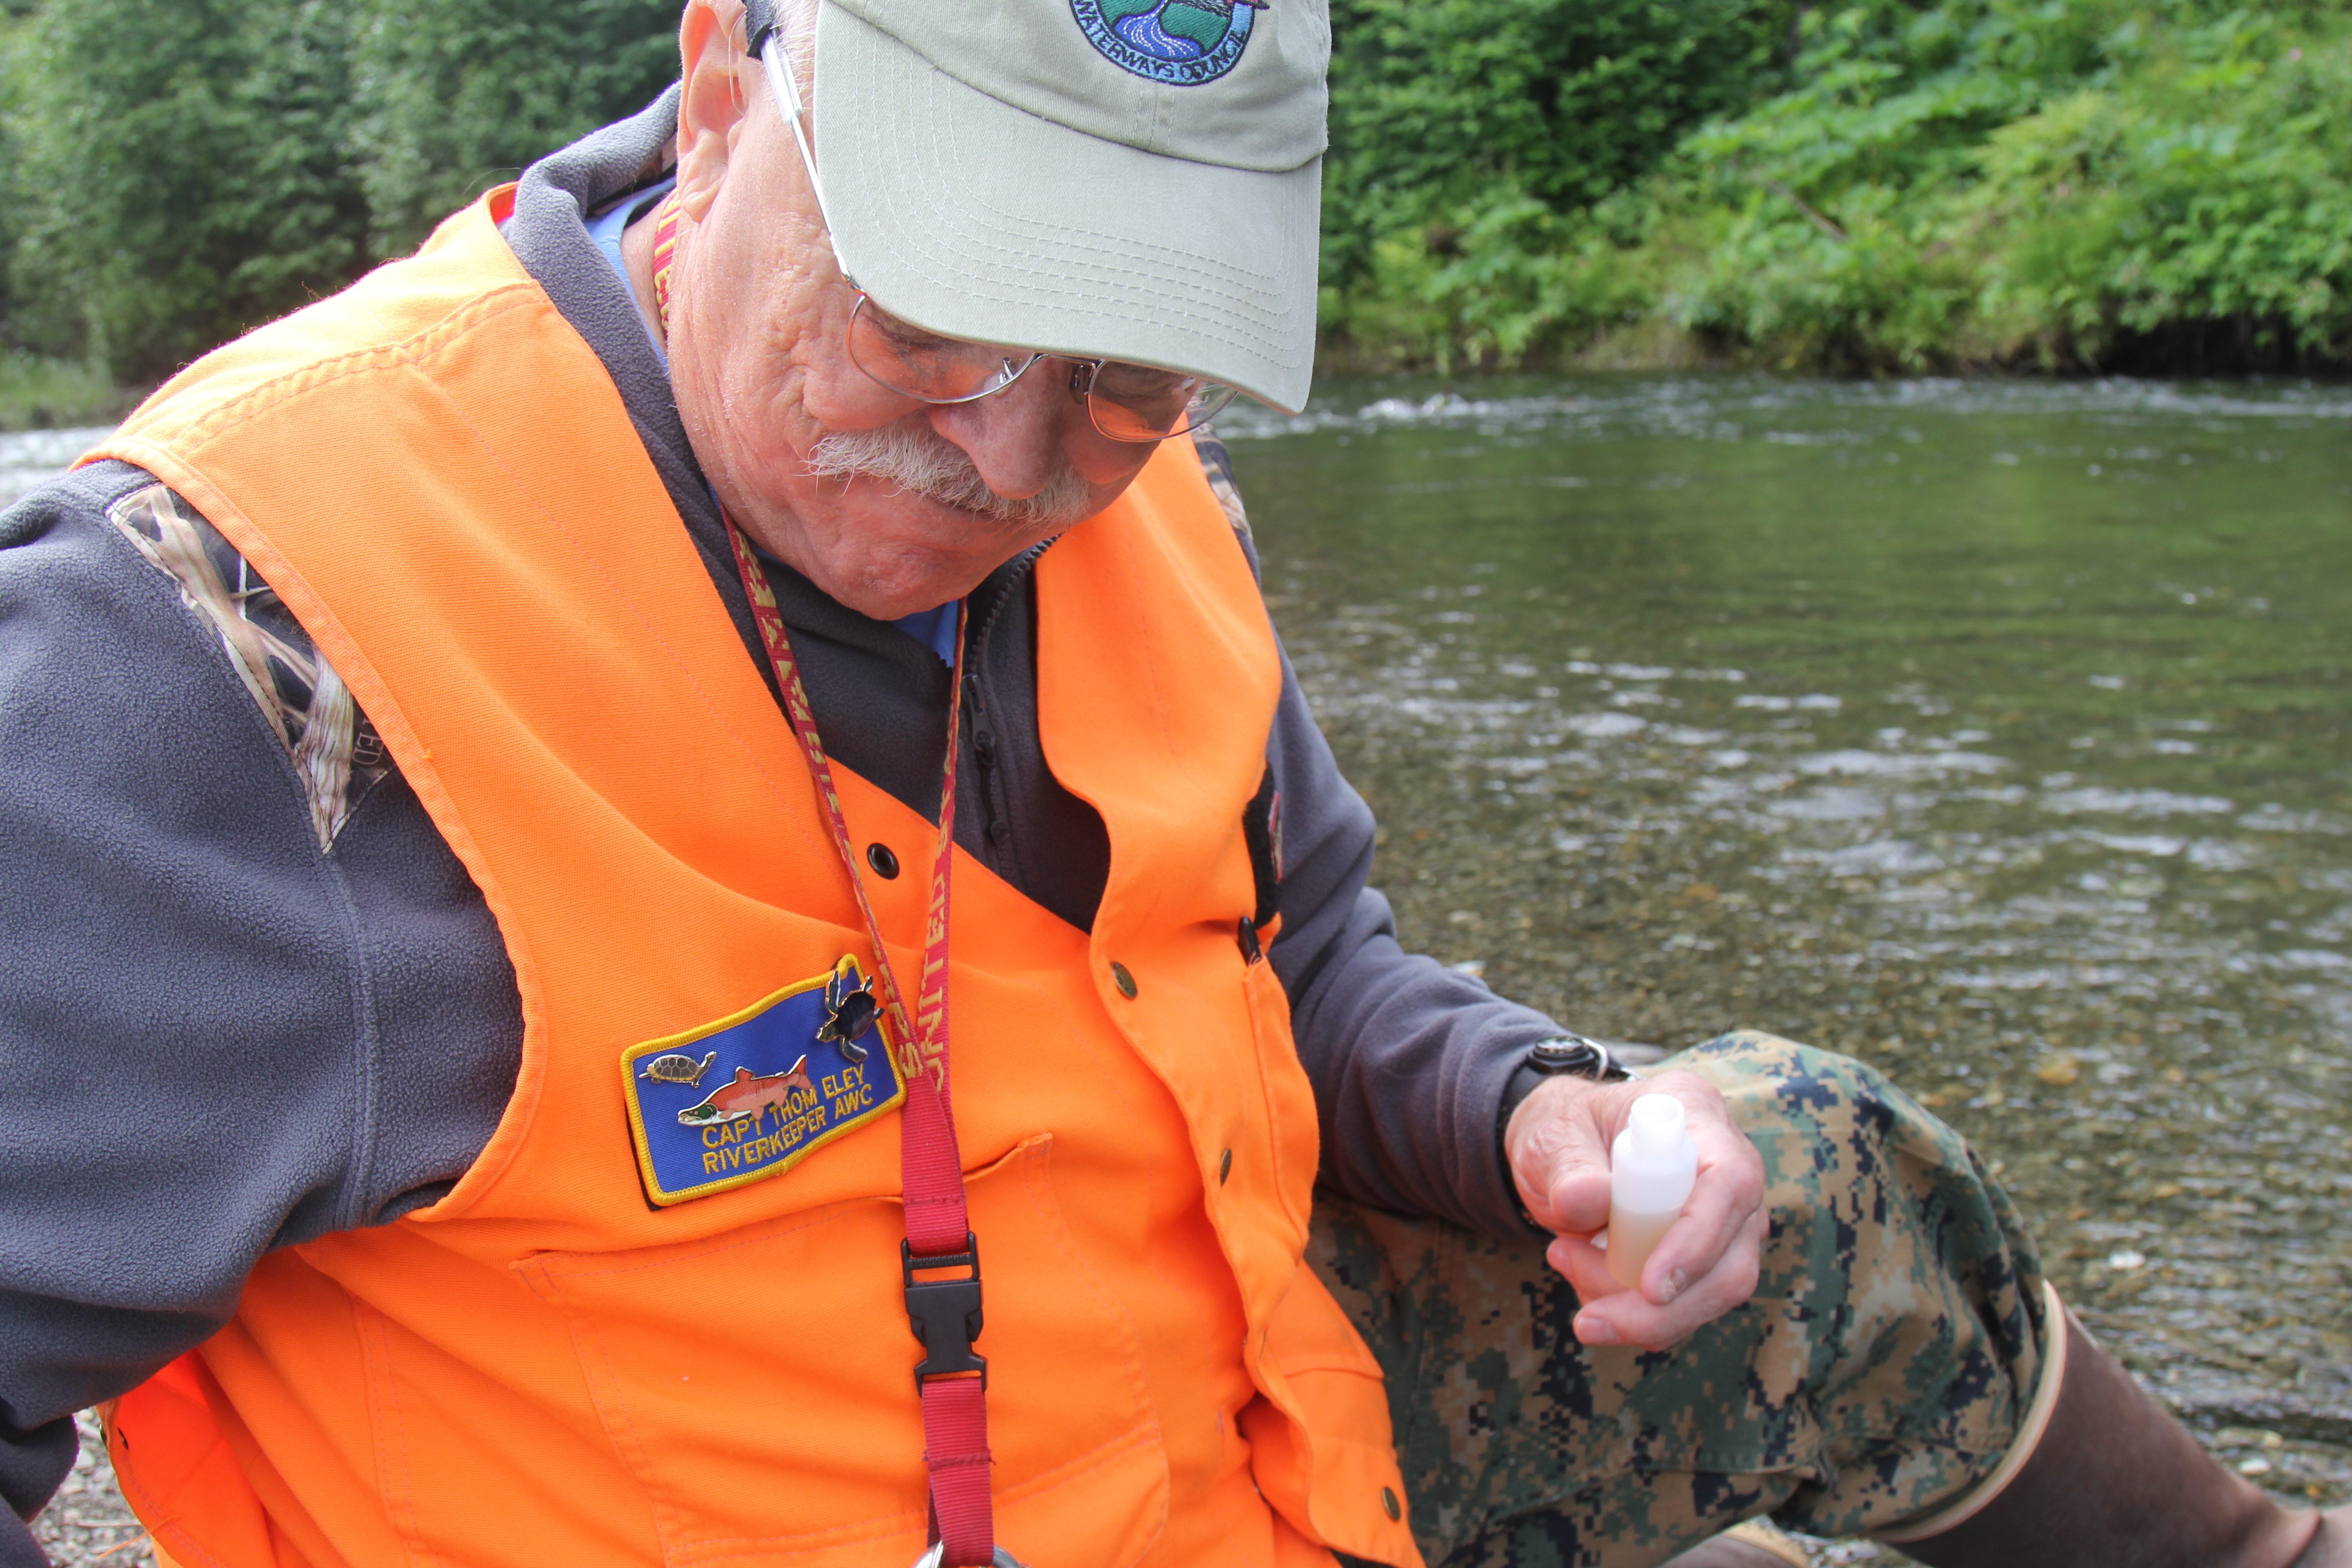 Is swimming in Anchorage's waterways safe?